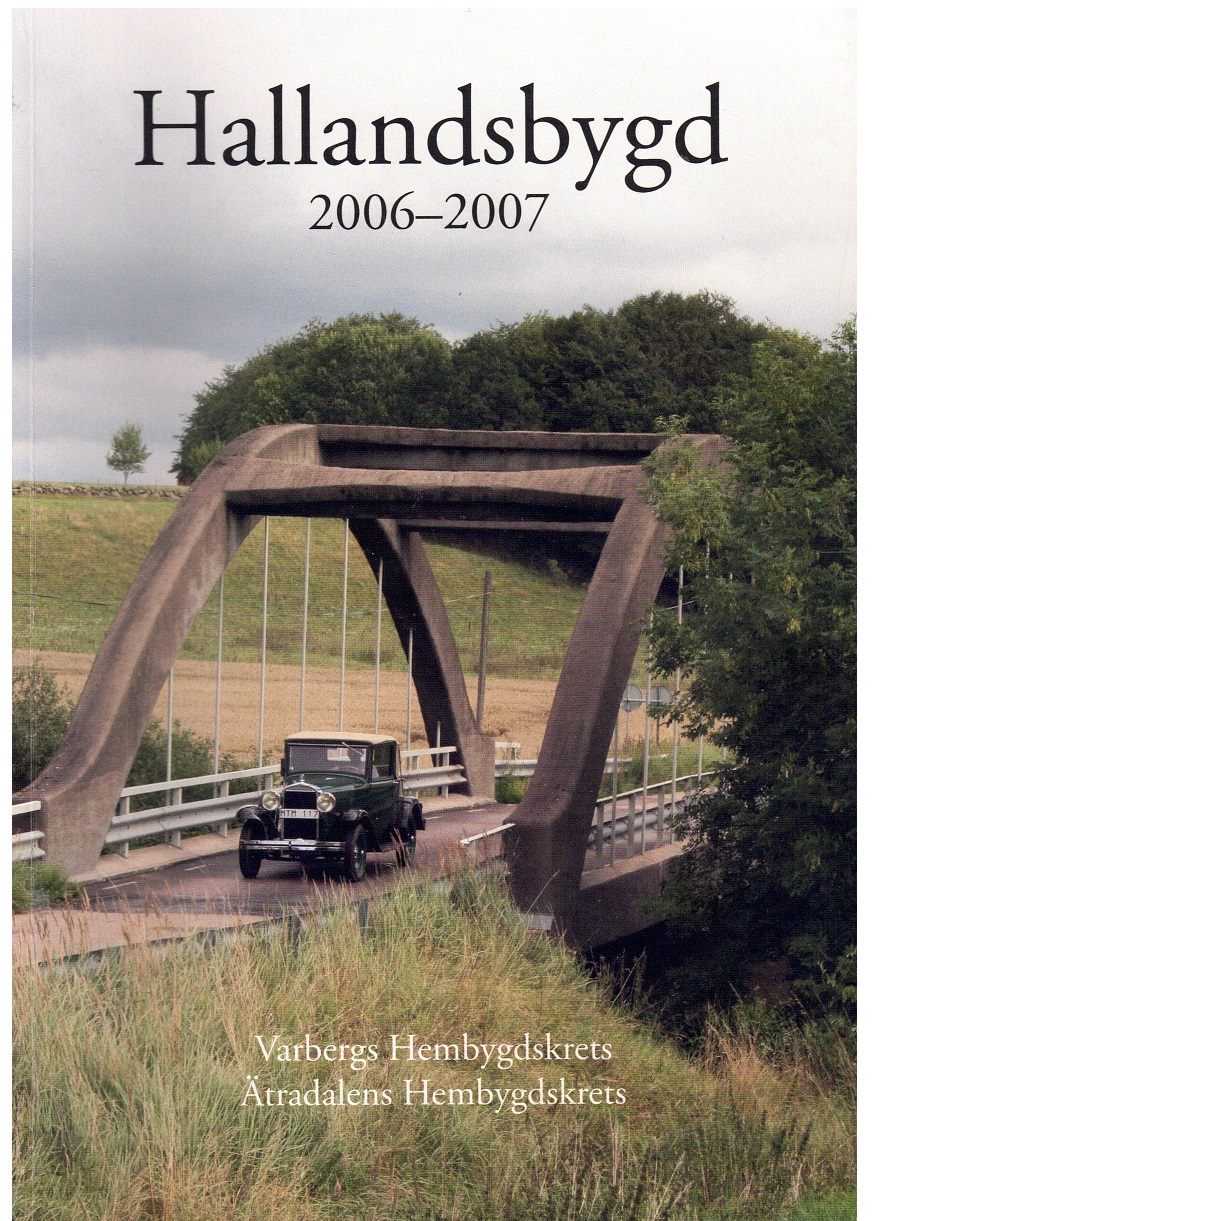 Hallandsbygd 2006-2007 - Red.